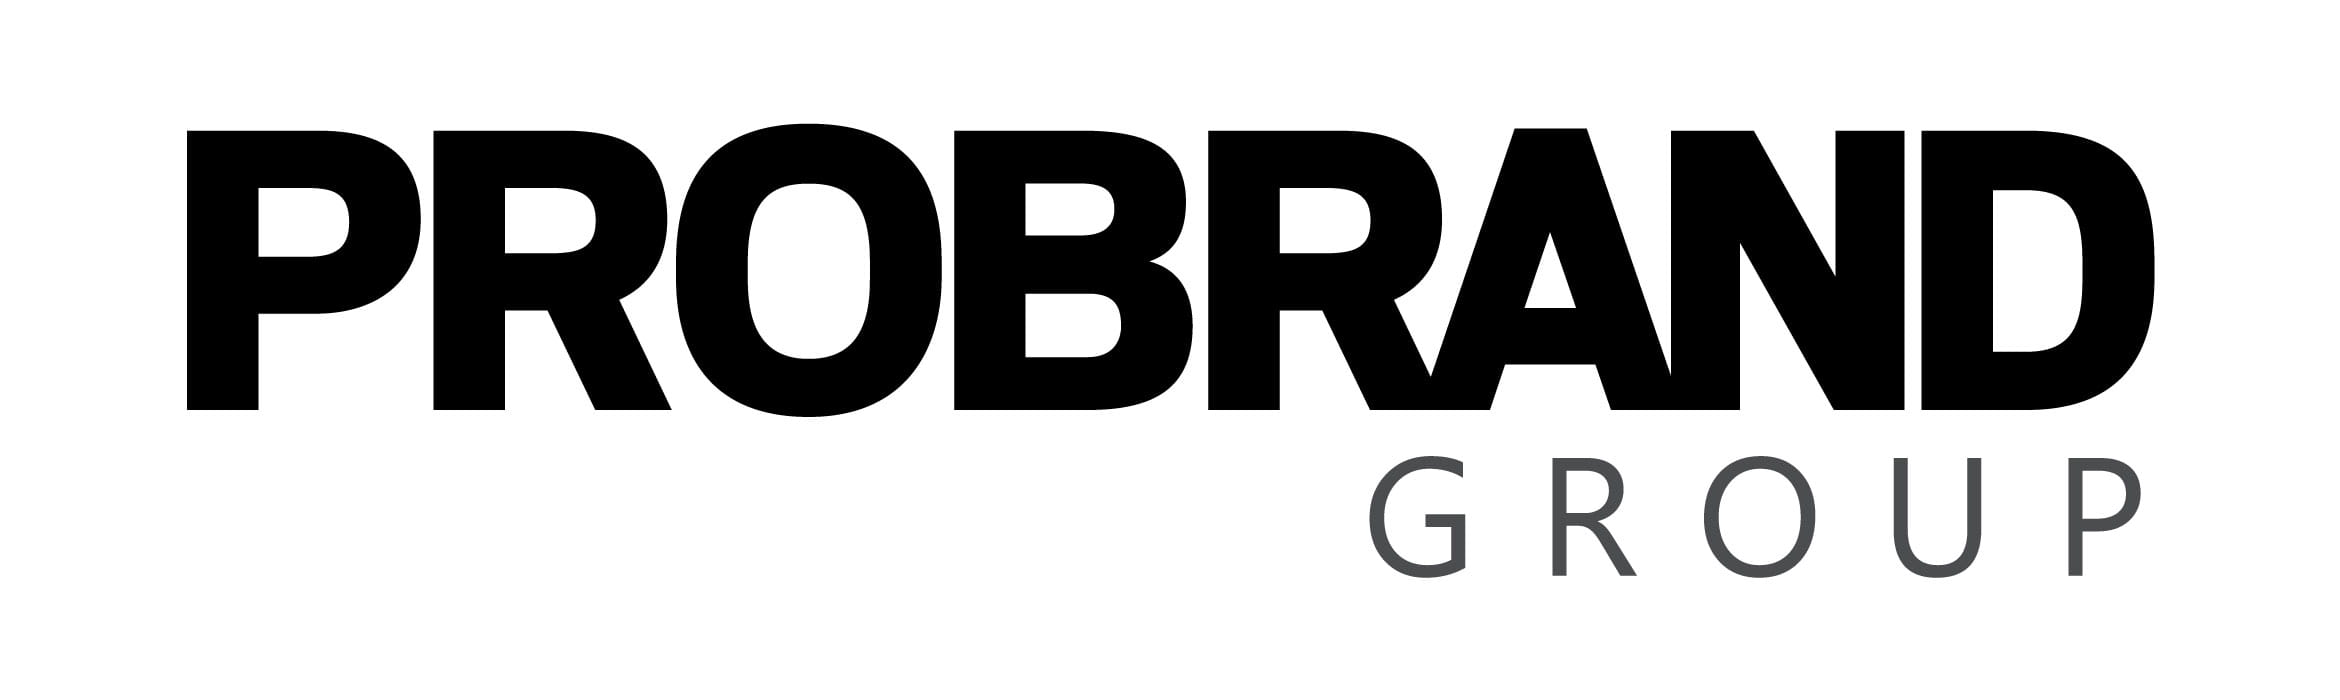 probrand group logo